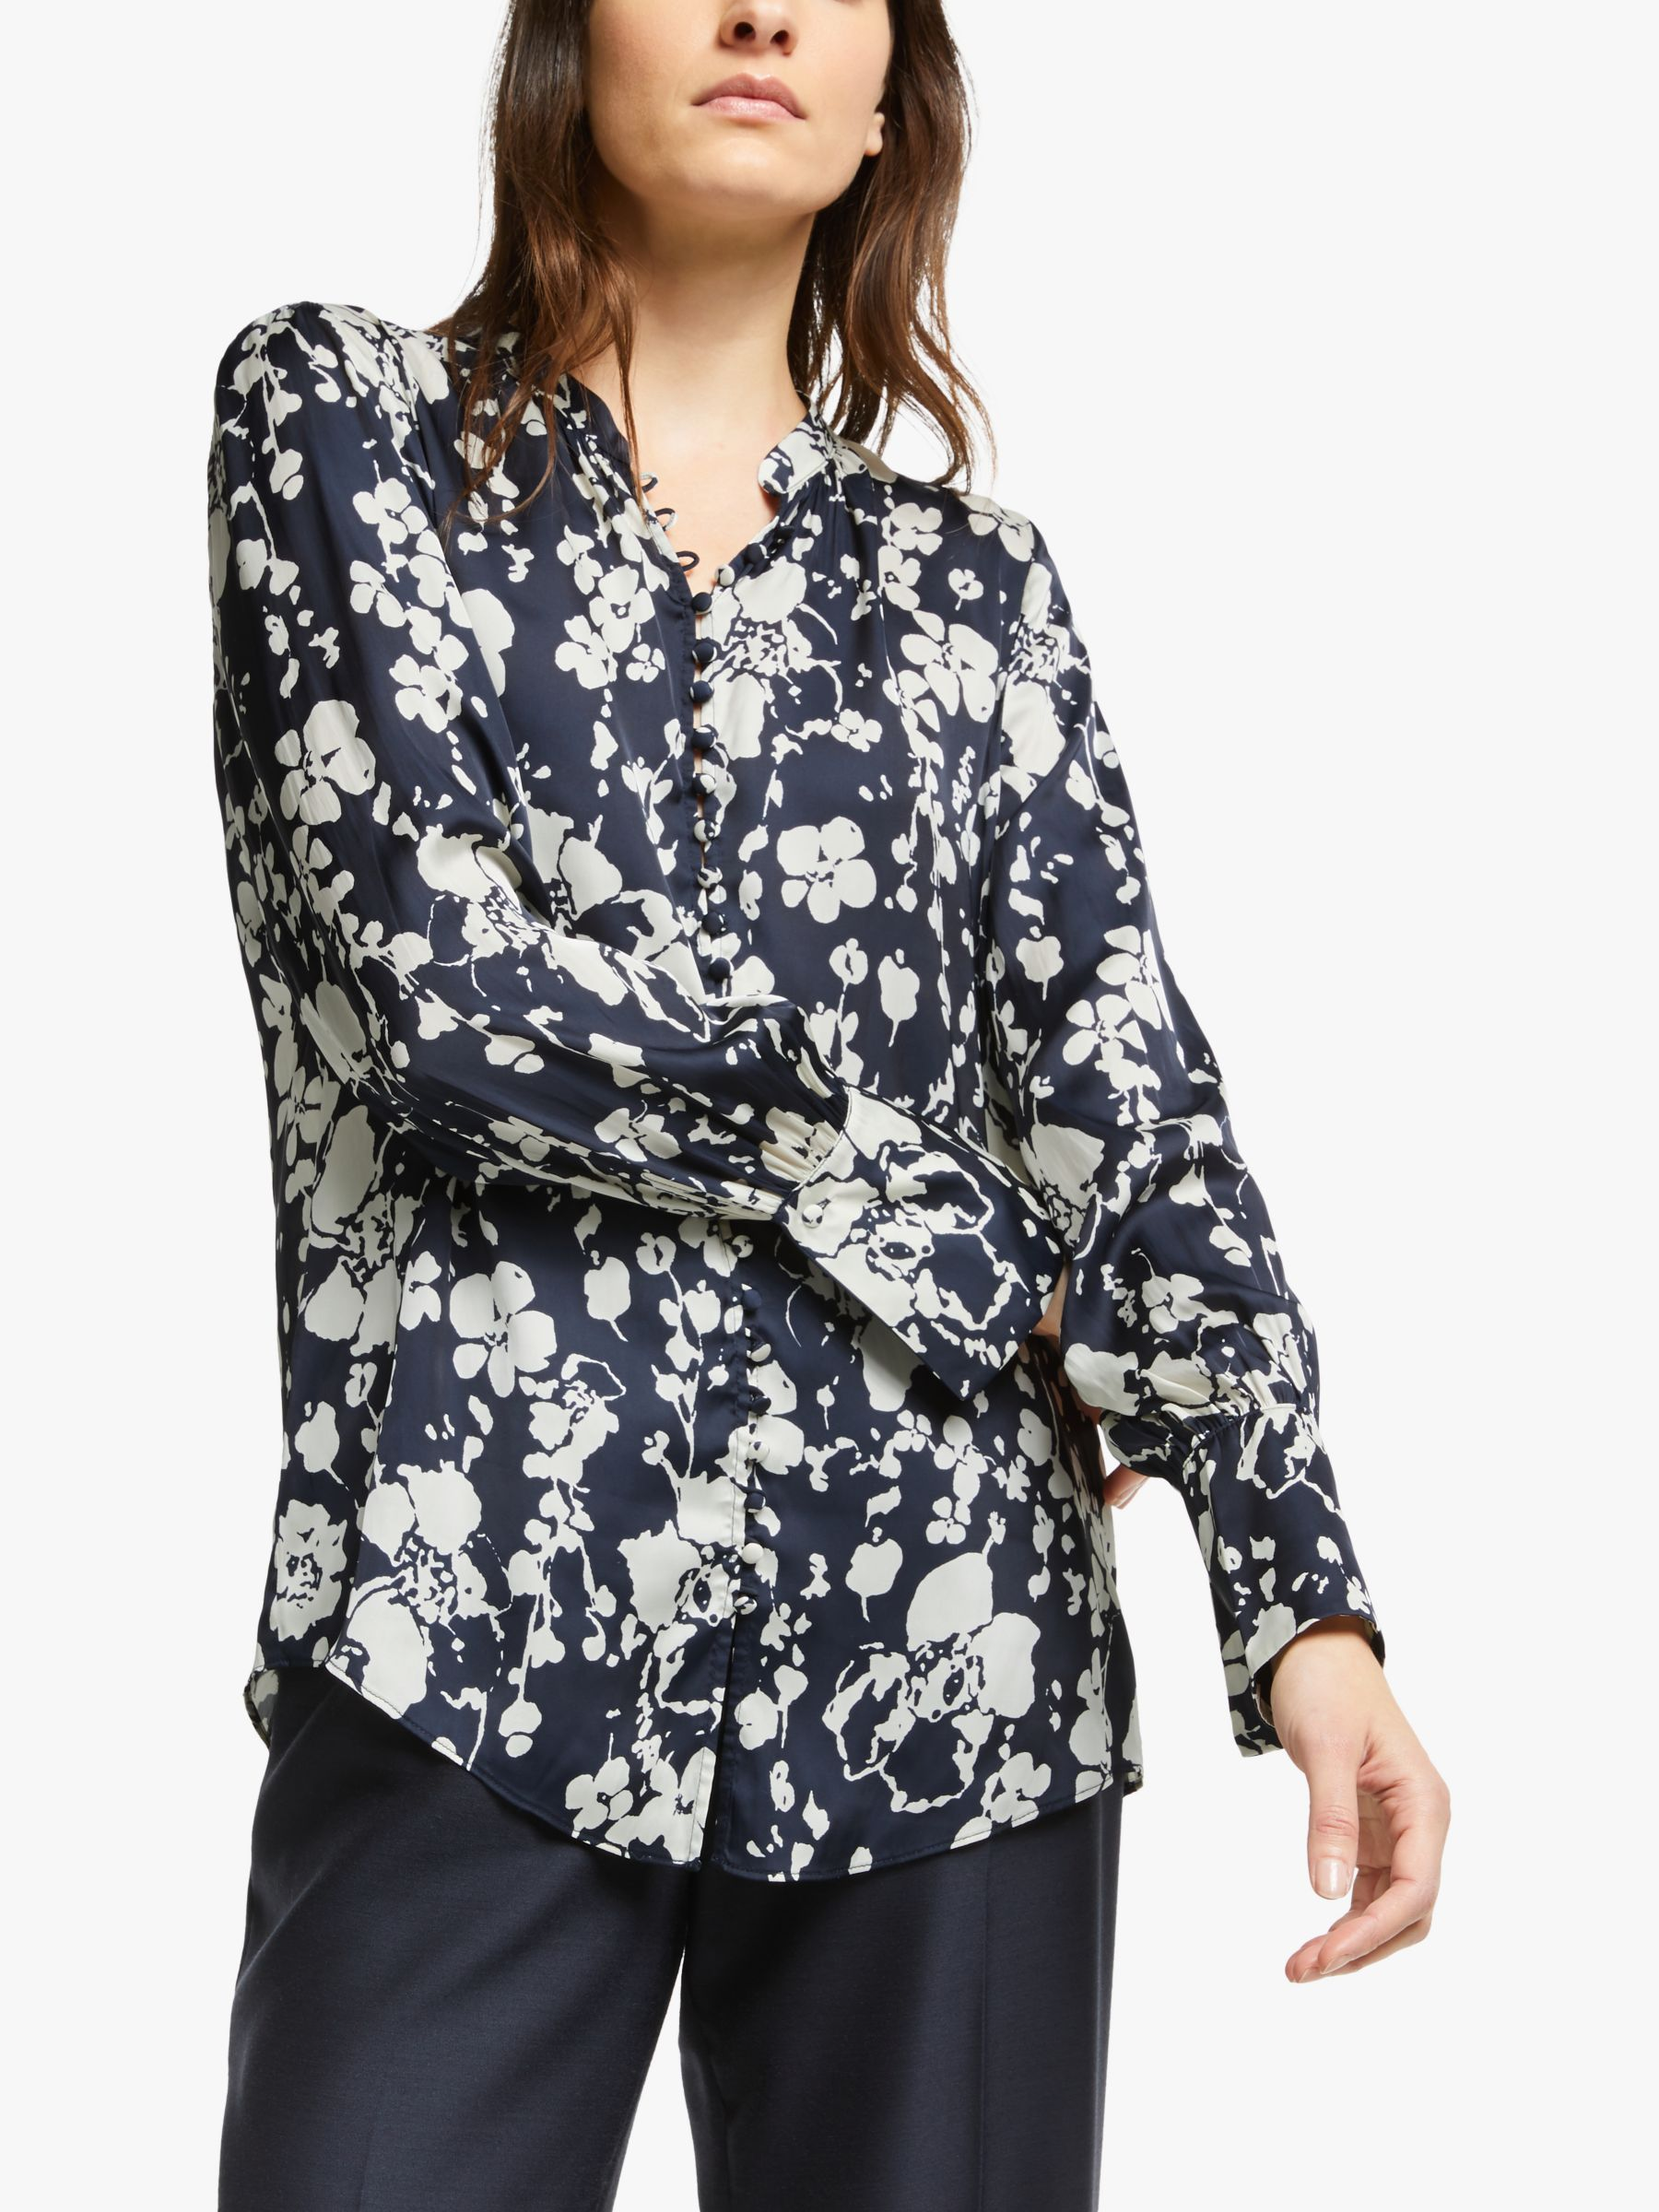 Joie Joie Tariana Floral Print Blouse, Midnight